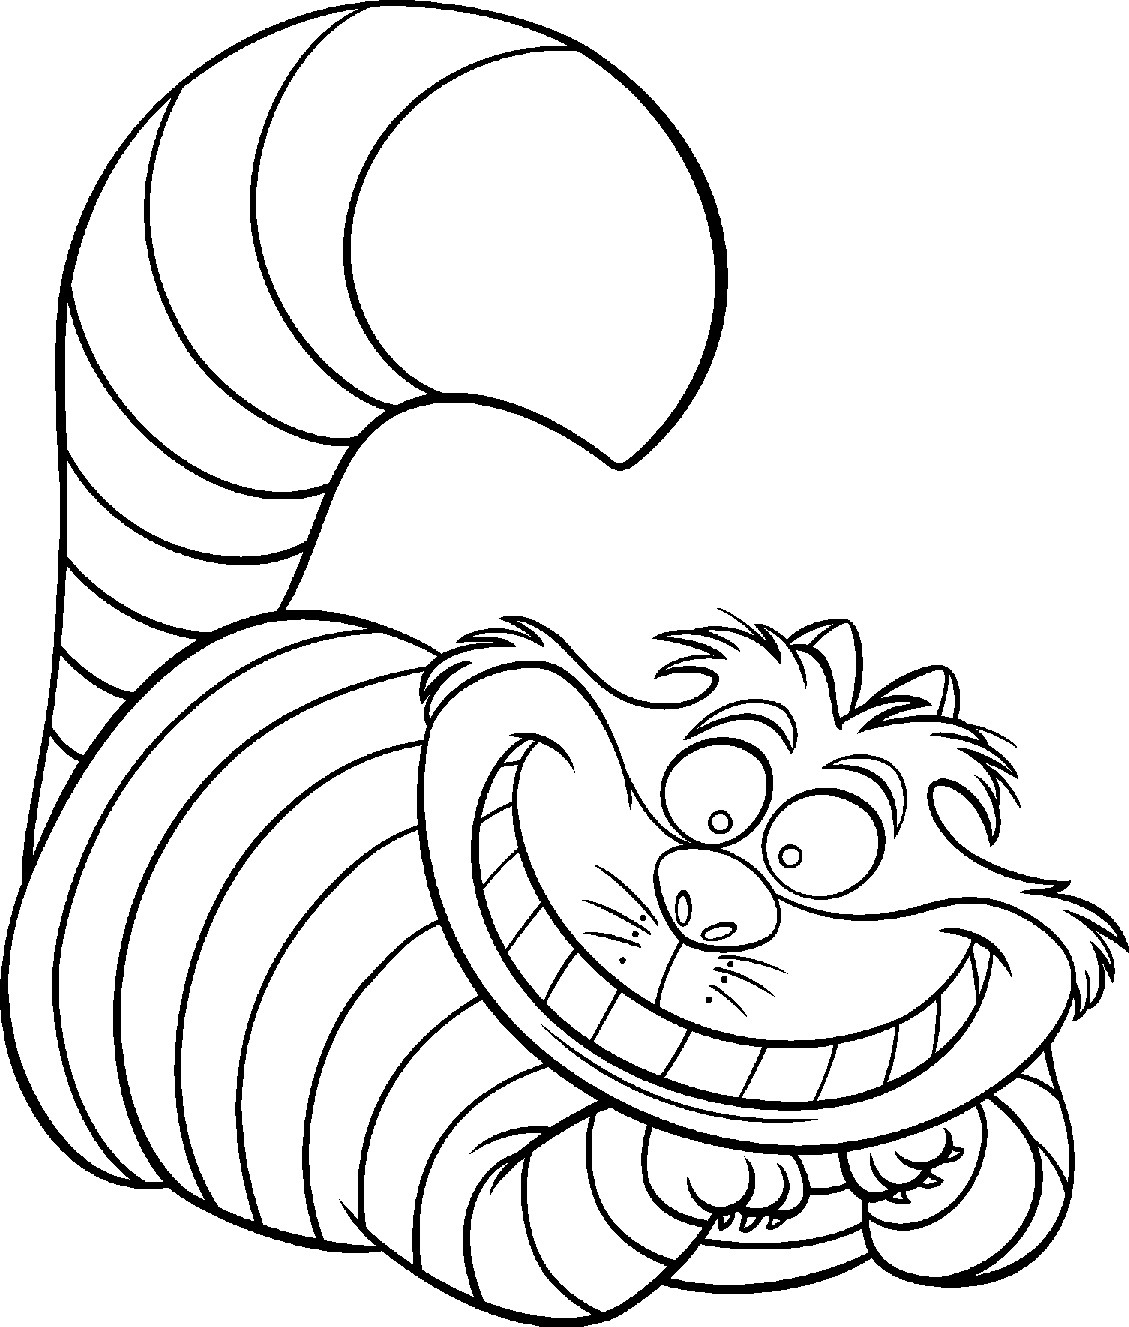 1129x1327 Printable Coloring Disney Halloween Coloring Book Pages Games